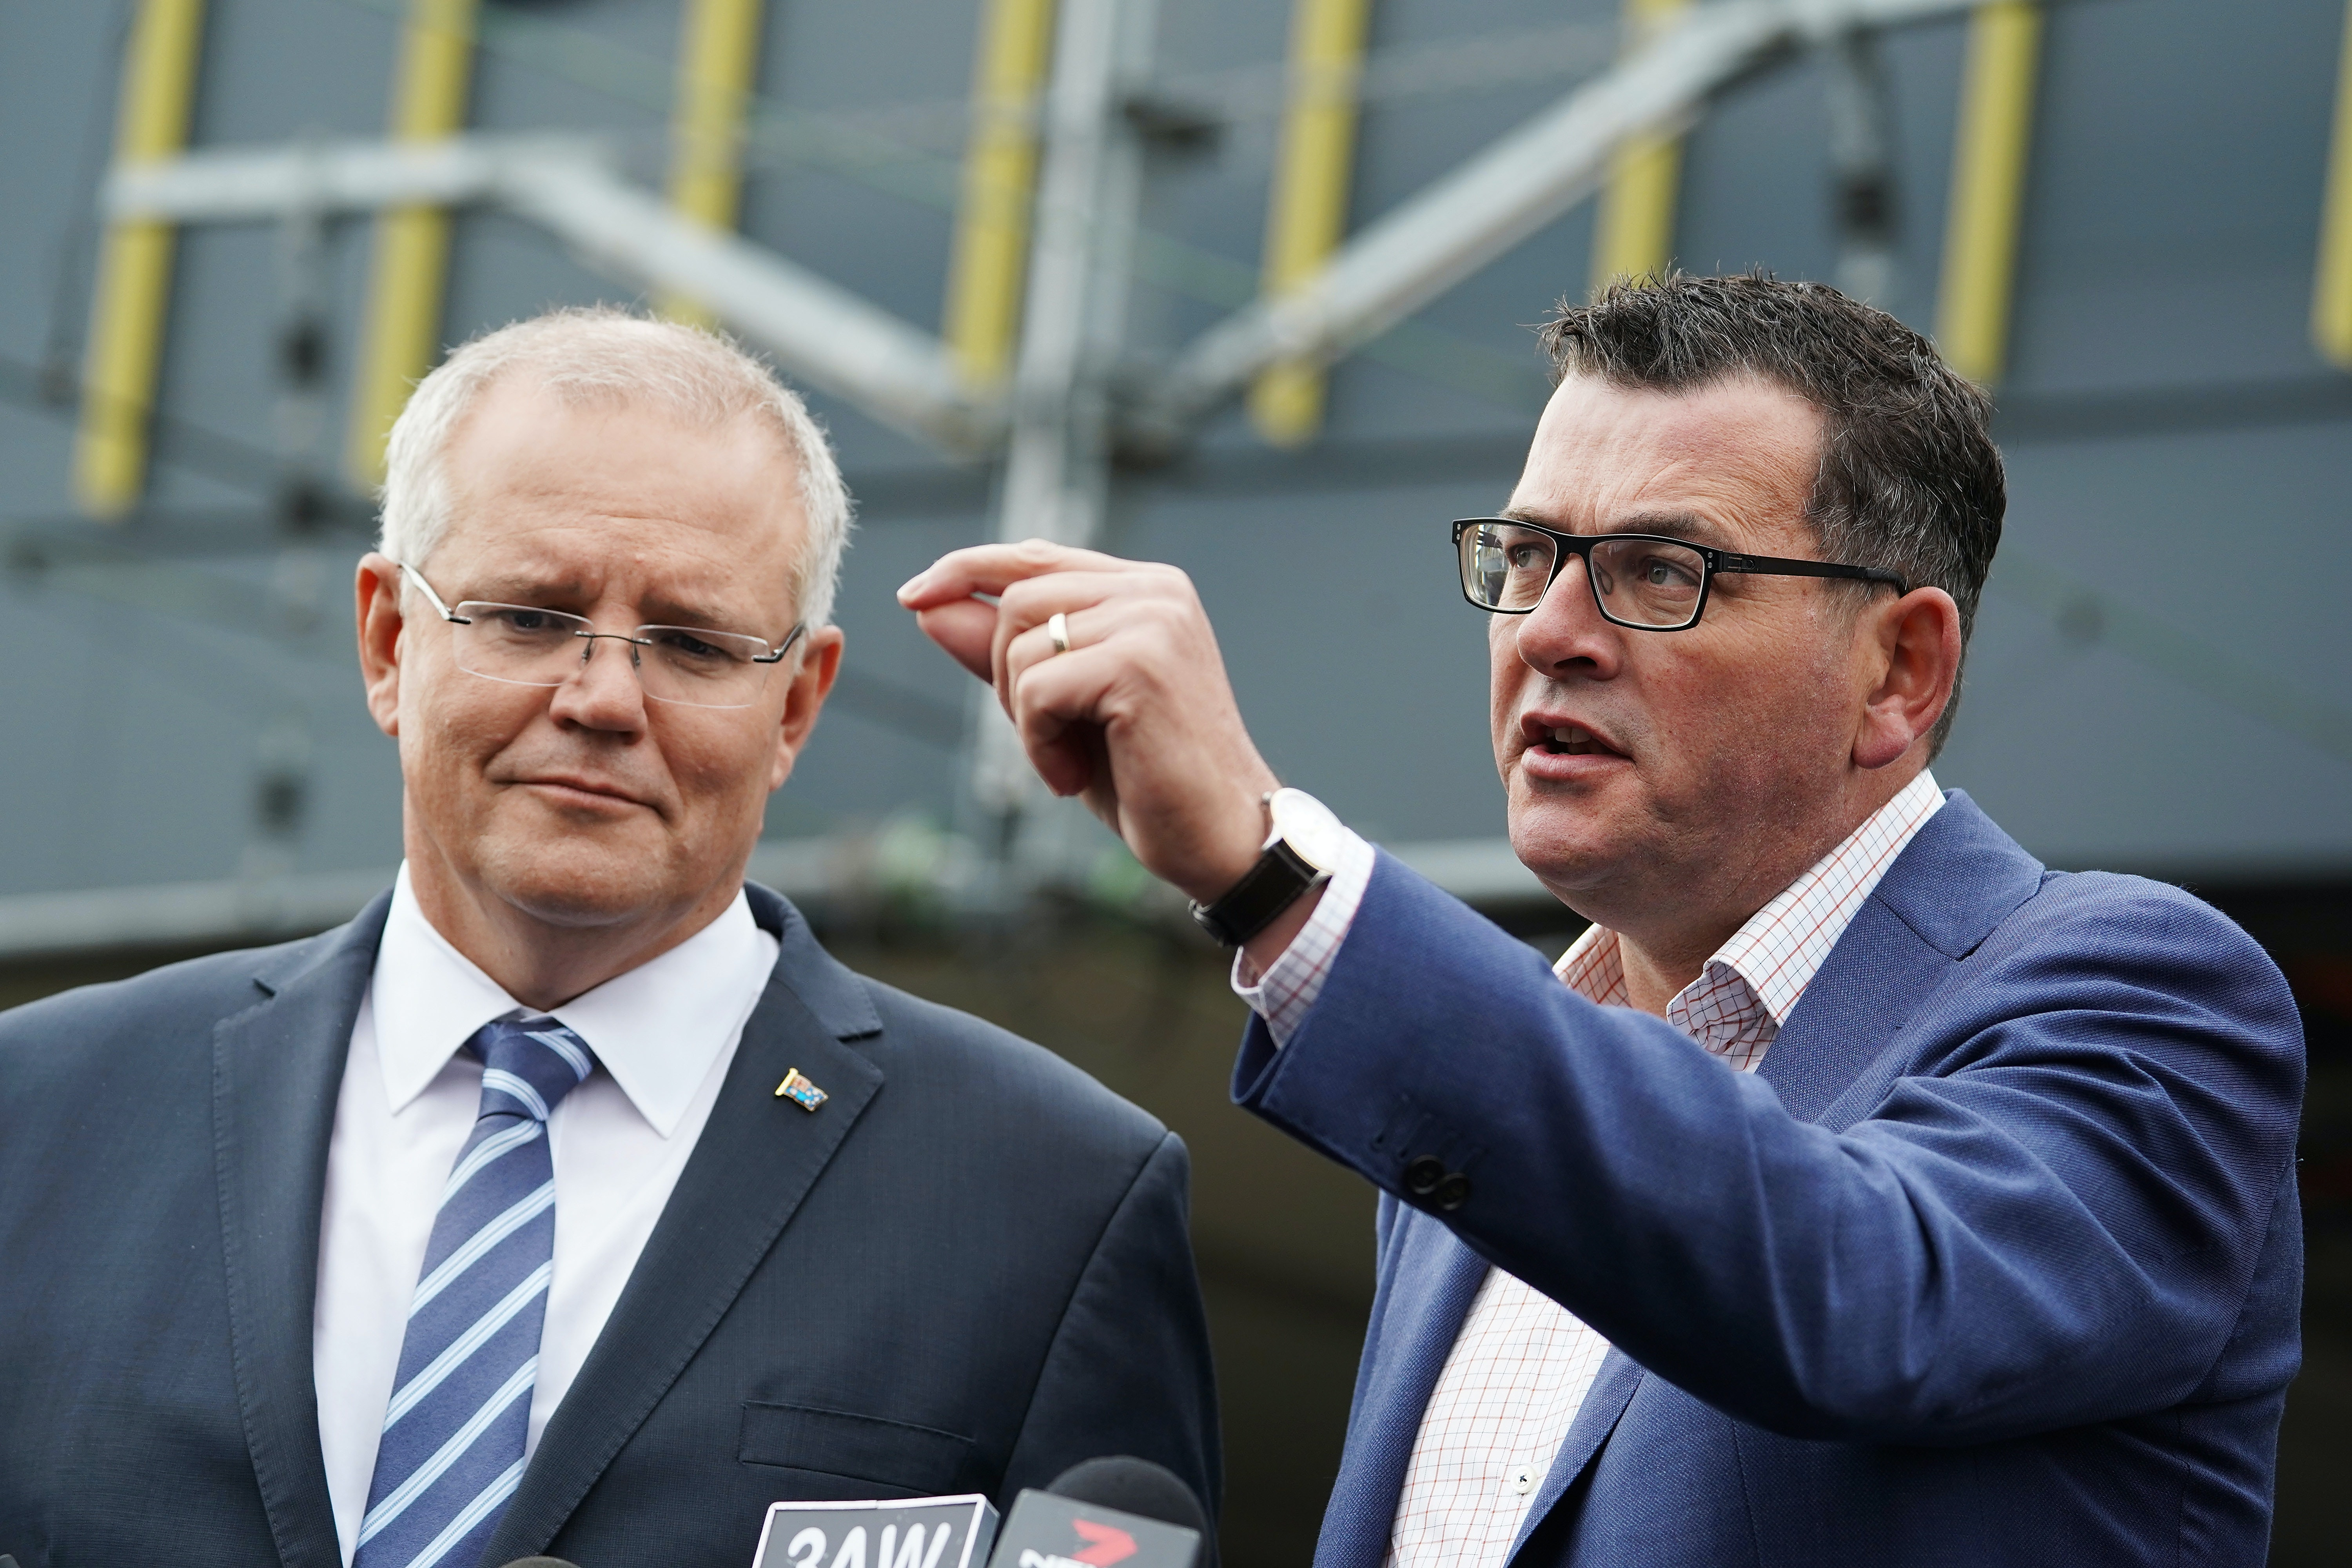 Prime Minister Scott Morrison and Victorian Premier Daniel Andrews at press conference in March 2018 announce a combined $10 billion in funding to build a rail link to Melbourne Airport.